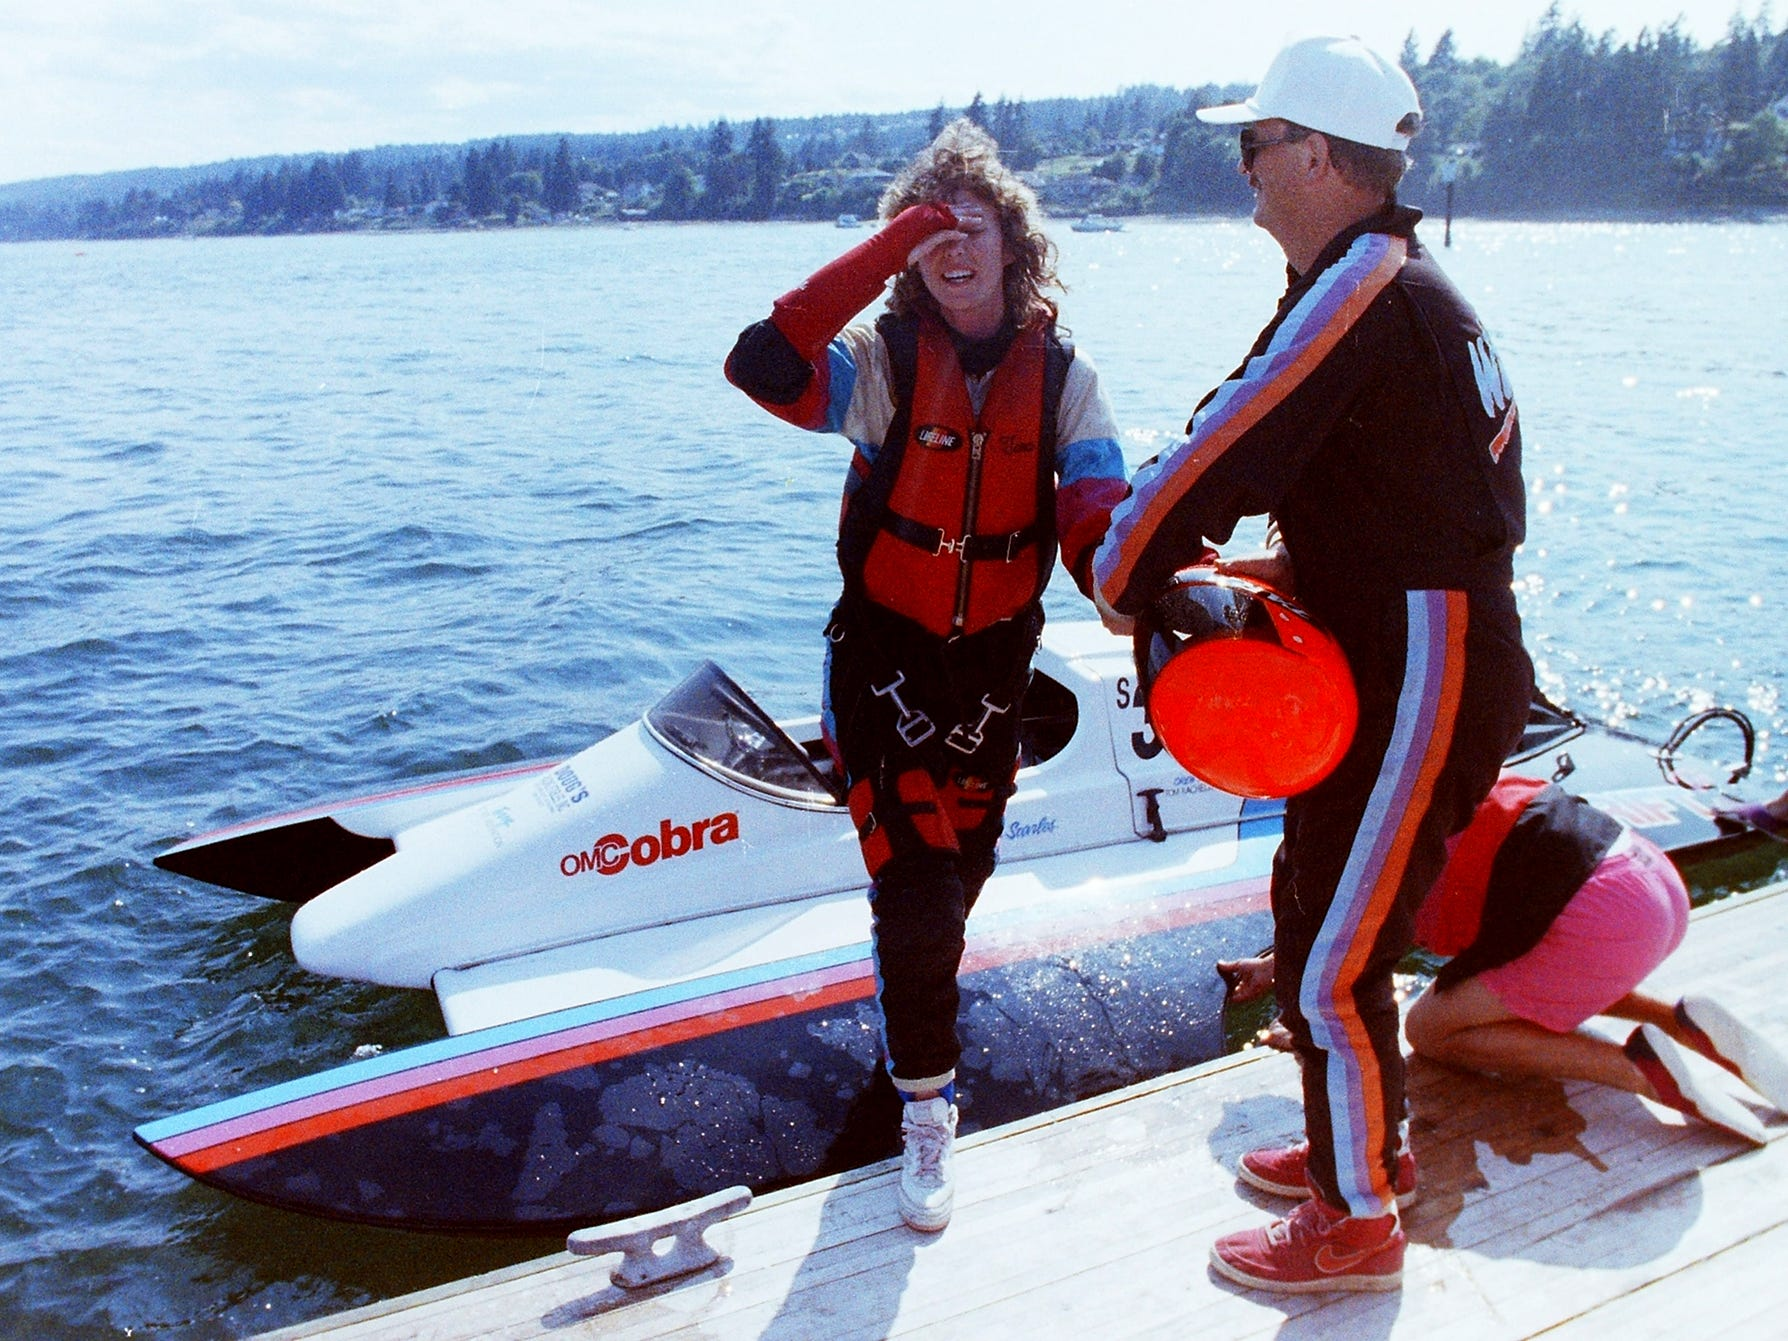 07/28/91Whaling Days Hydros